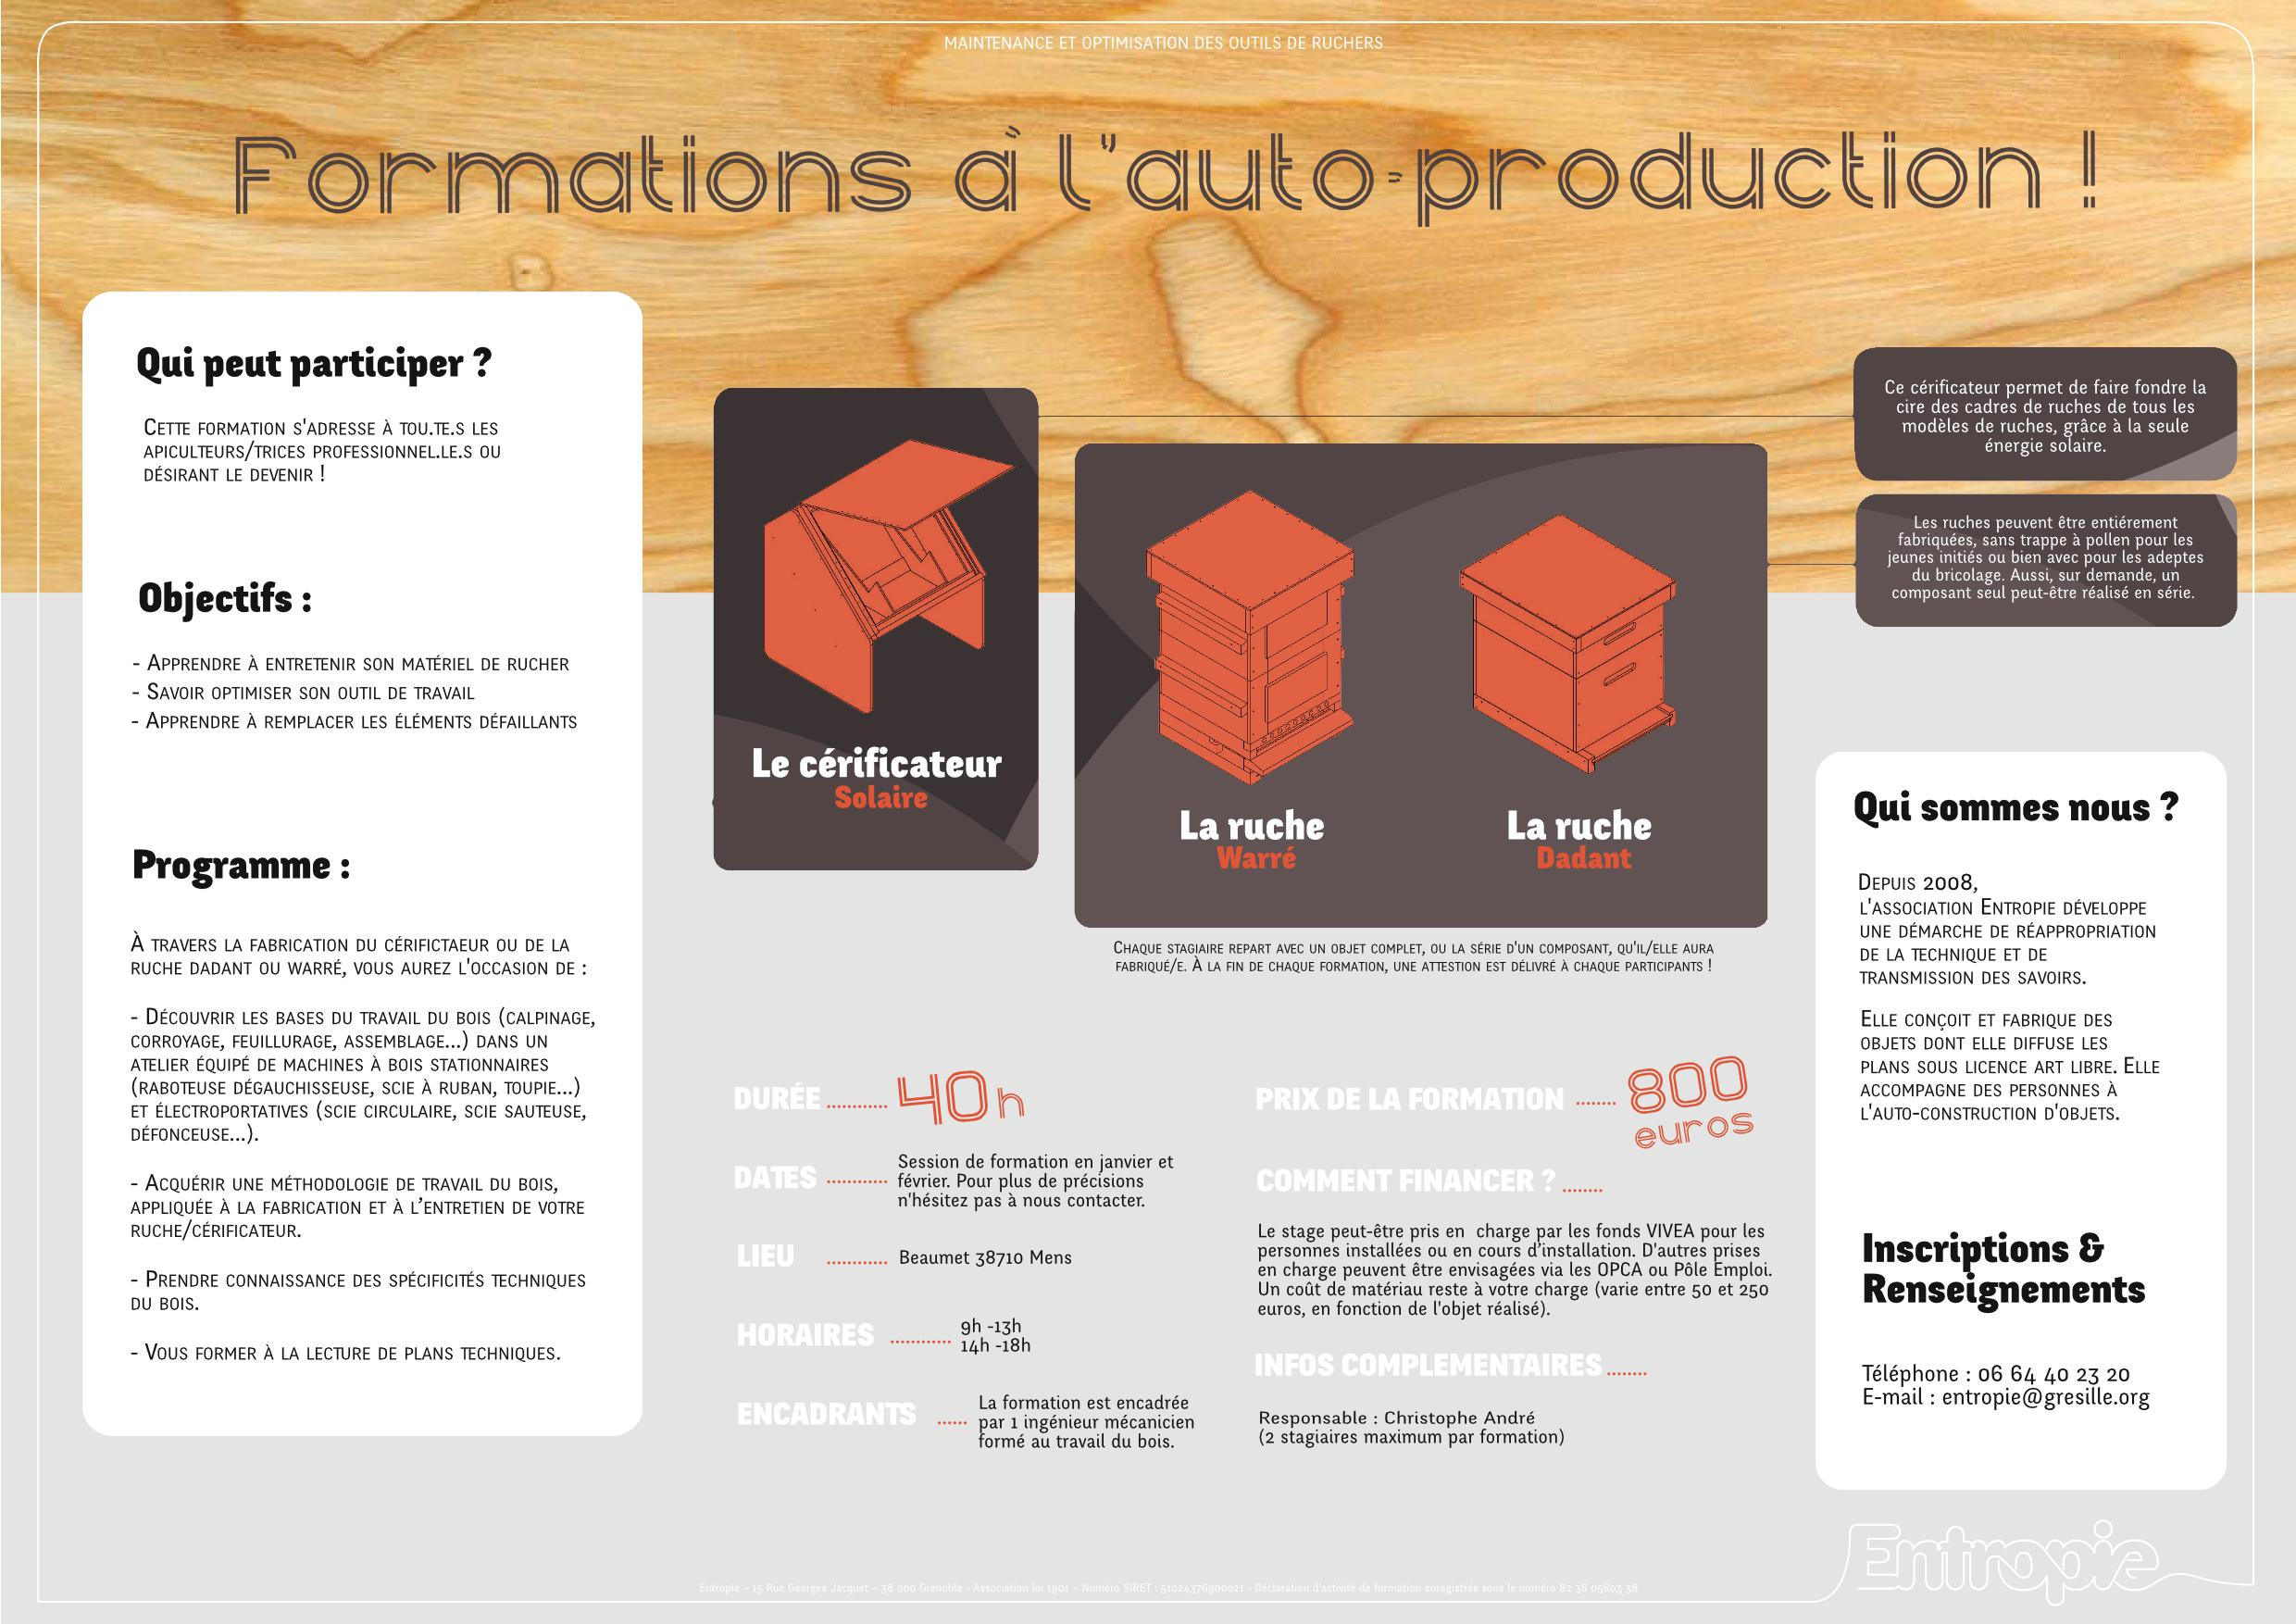 AFFICHE_FORMATION-page001.jpg